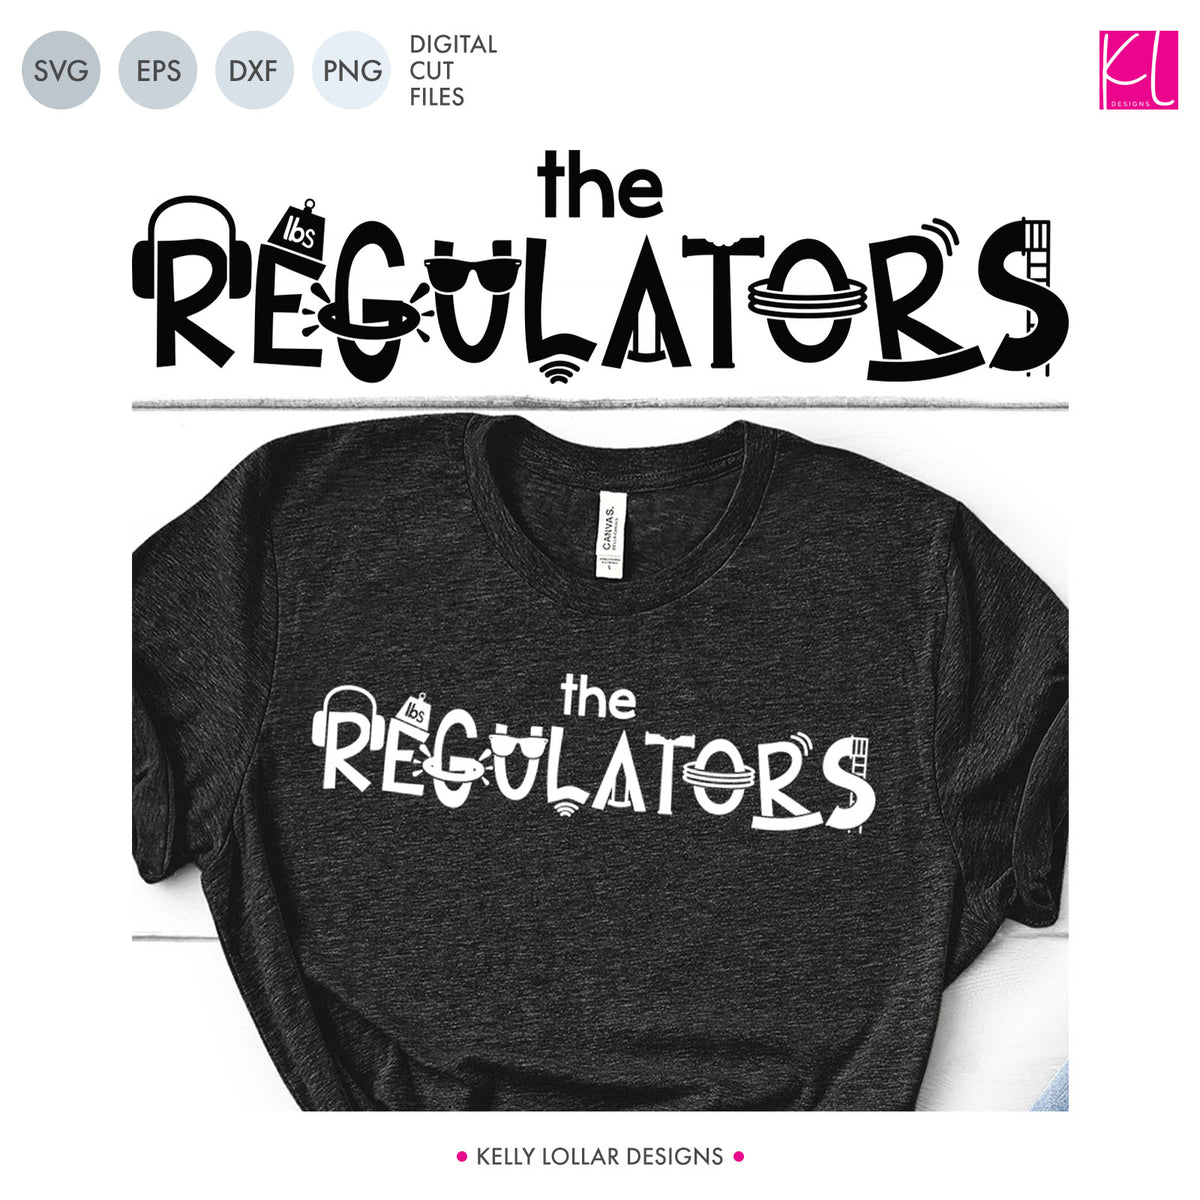 Regulator | SVG DXF EPS PNG Cut Files